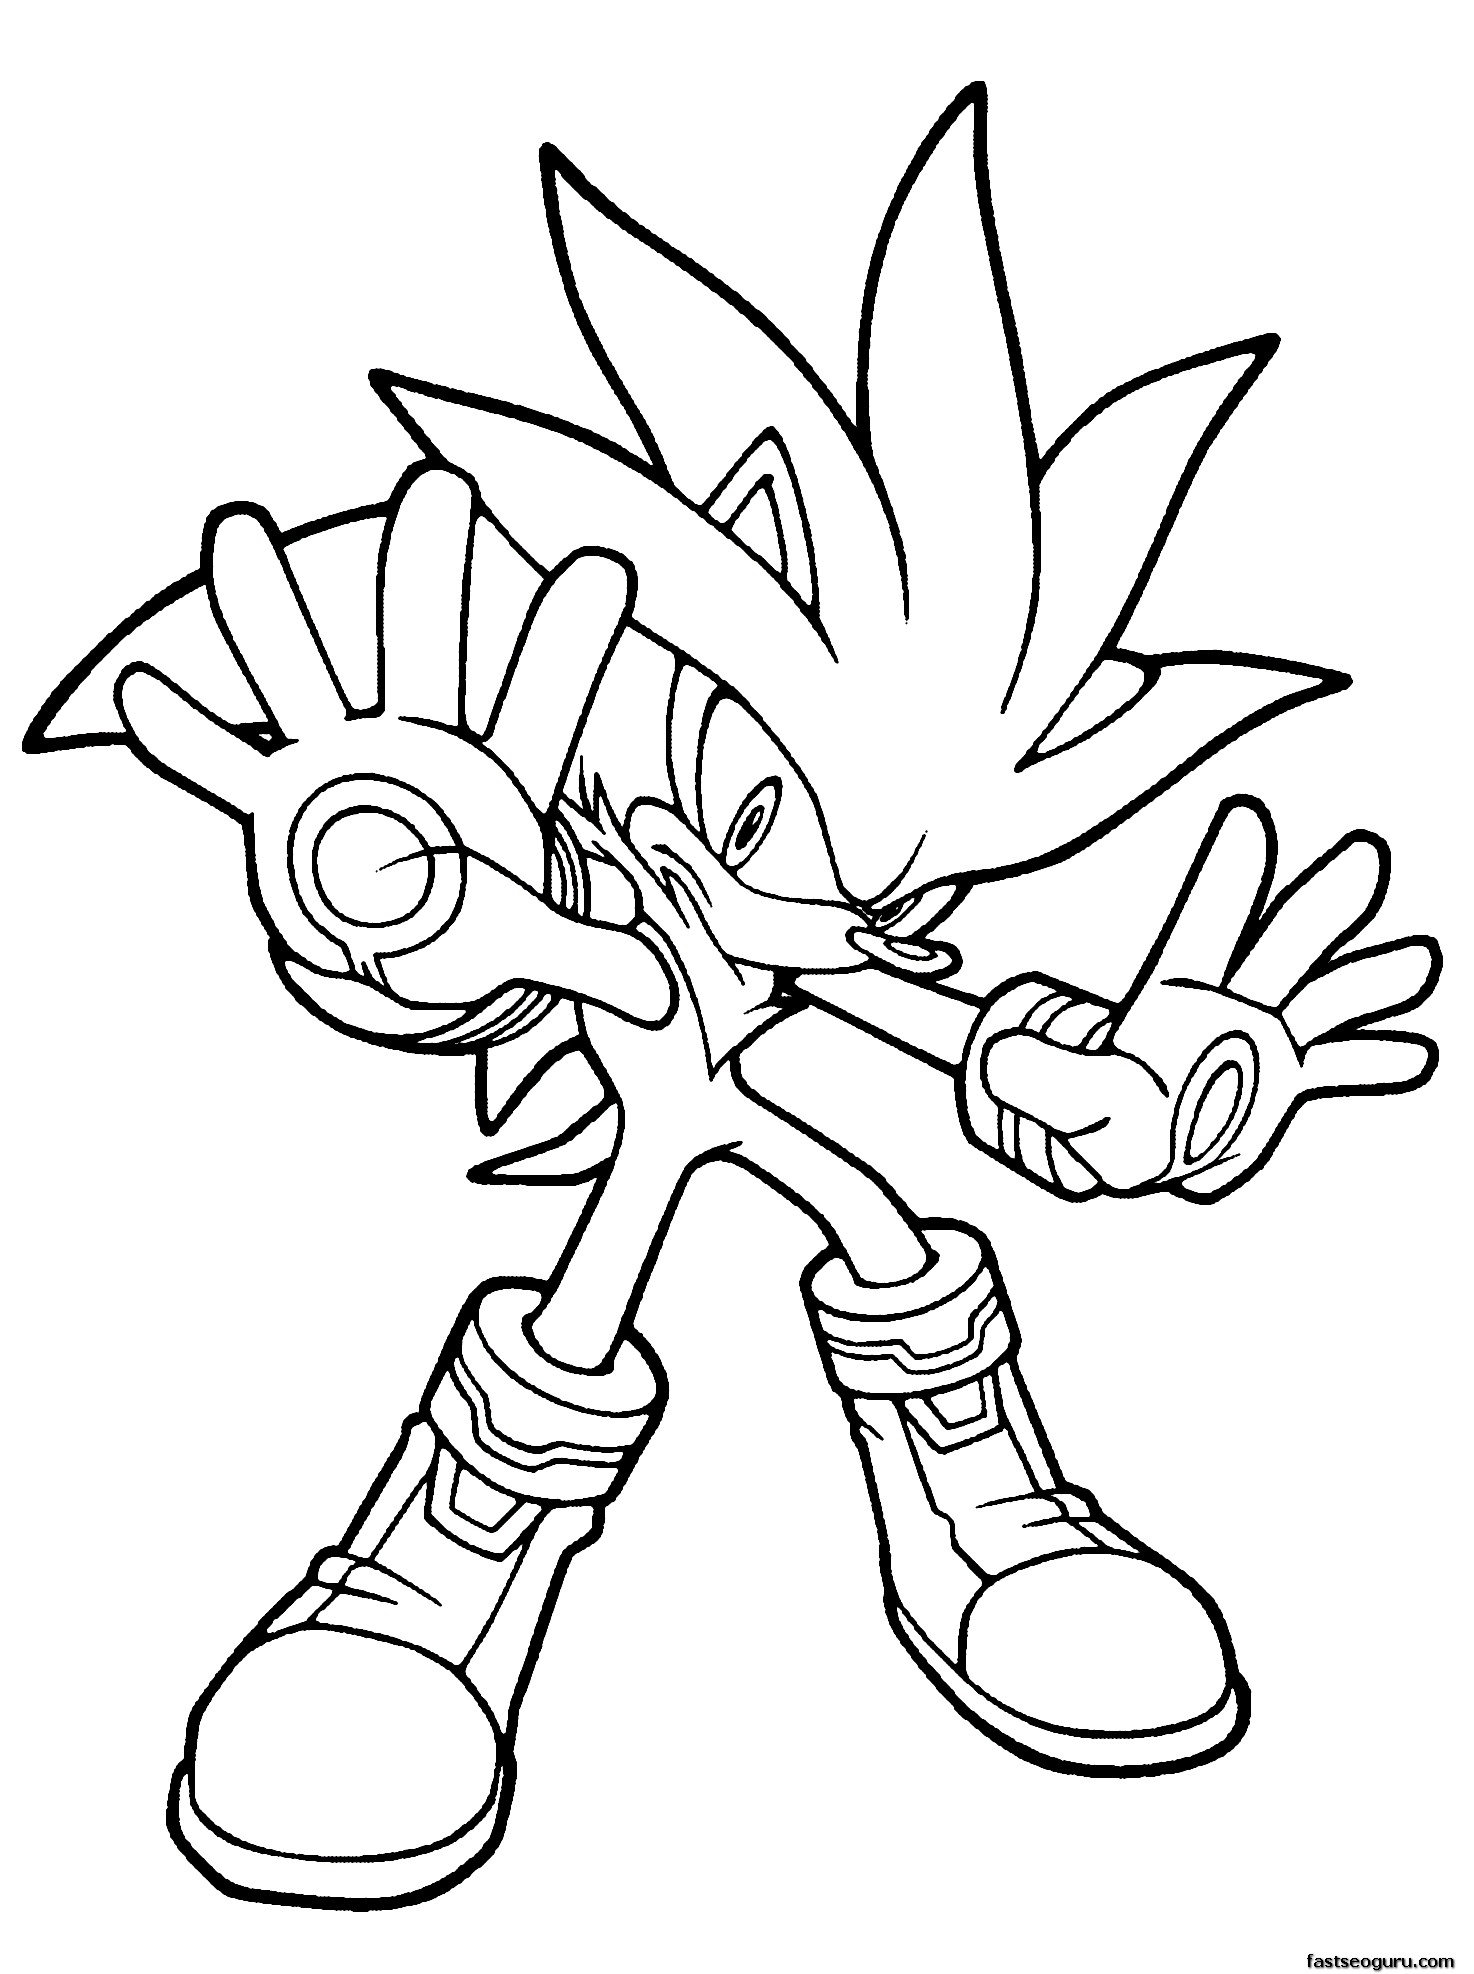 sonic the hedgehog silver in